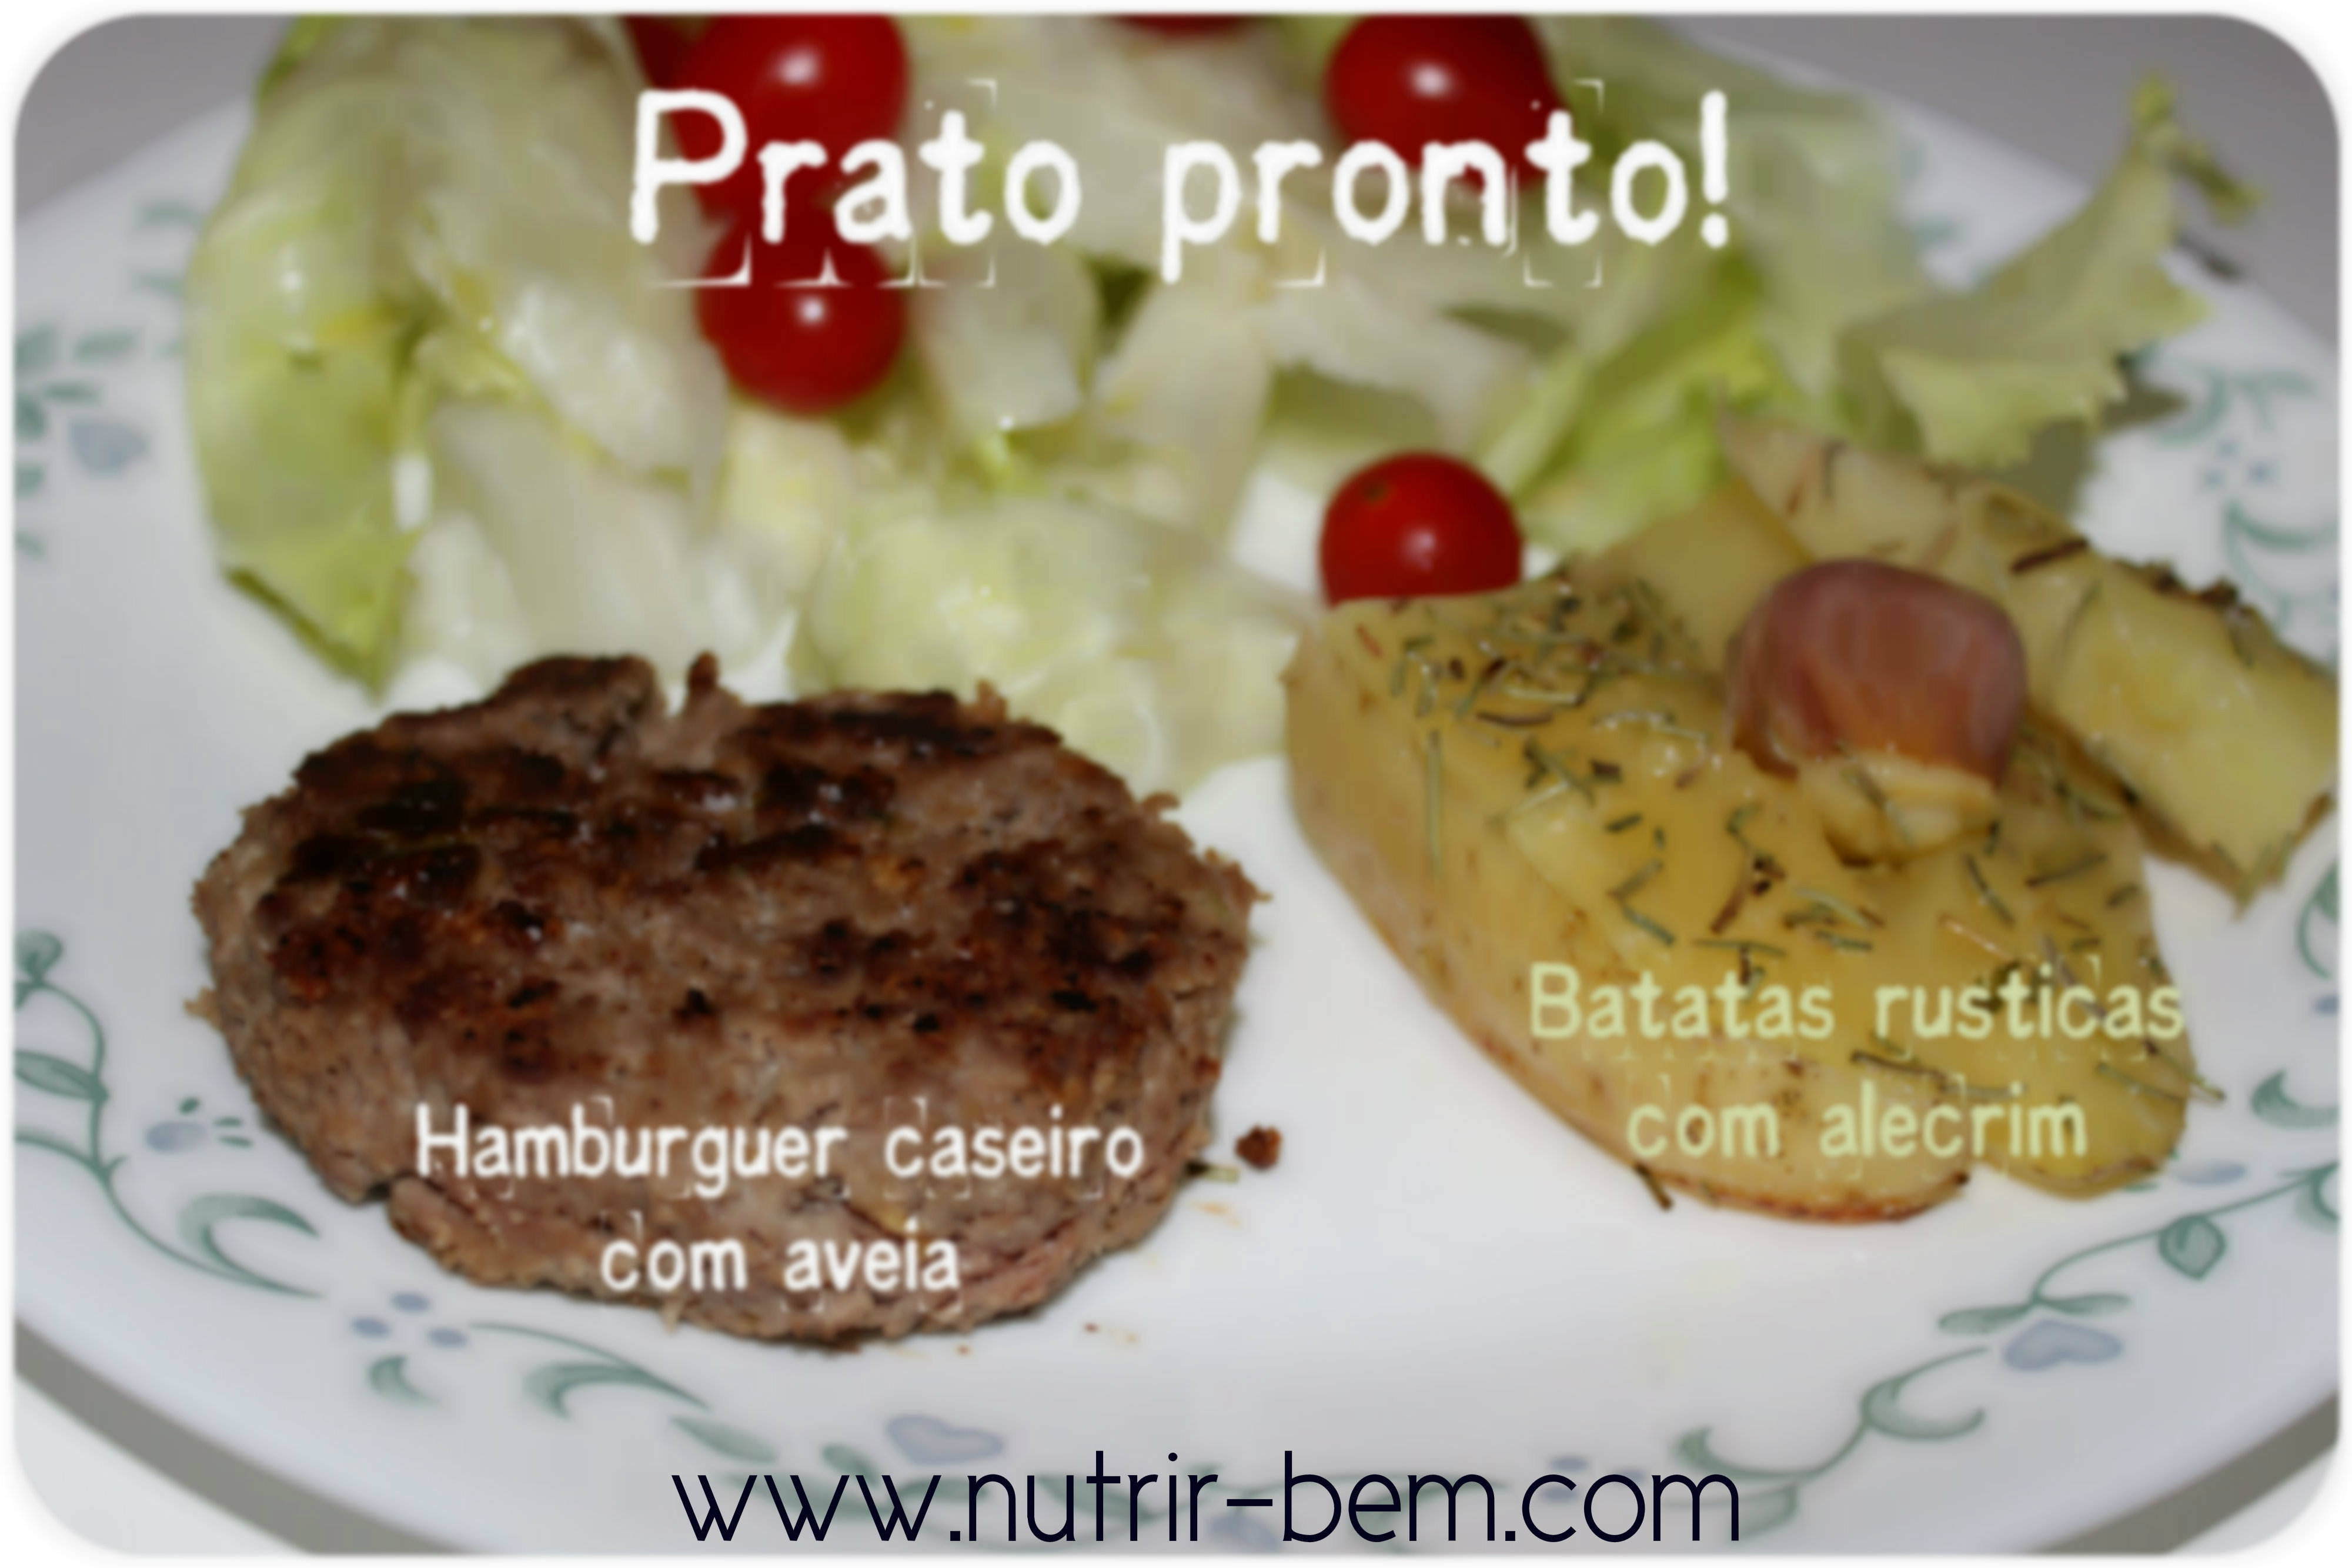 Not so fast food for Prato pronto